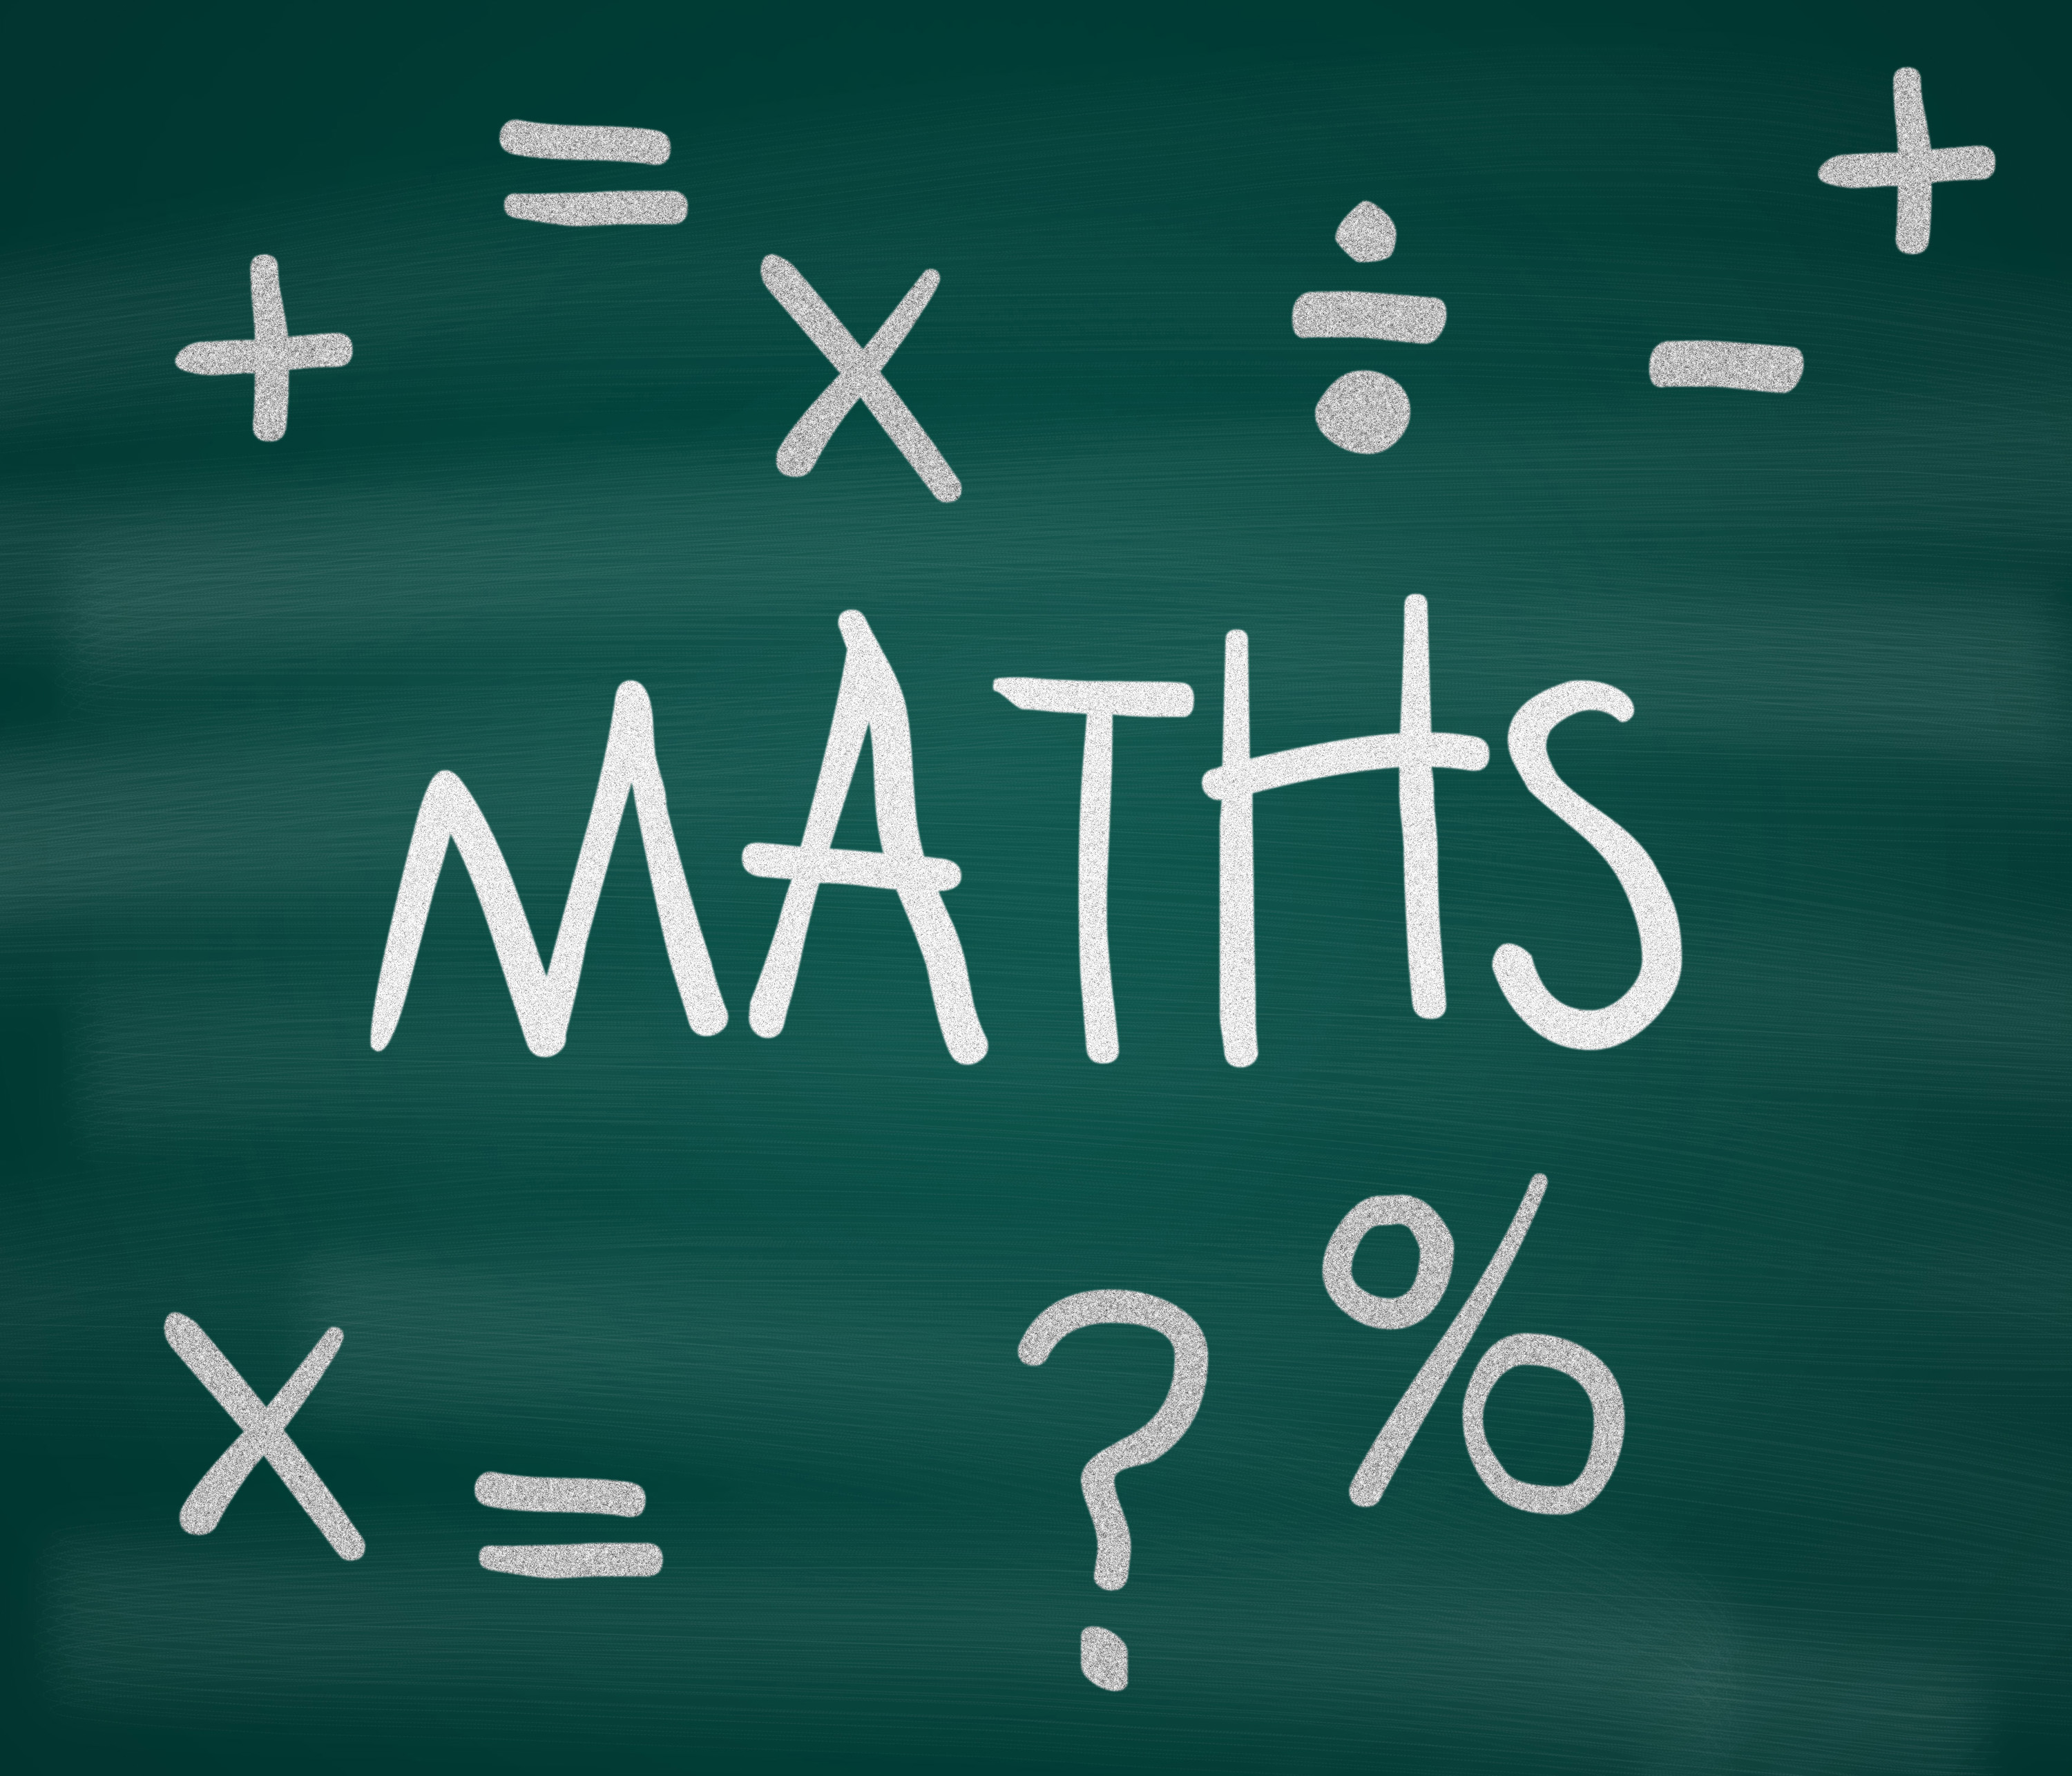 read-maths-excelcollegeindia